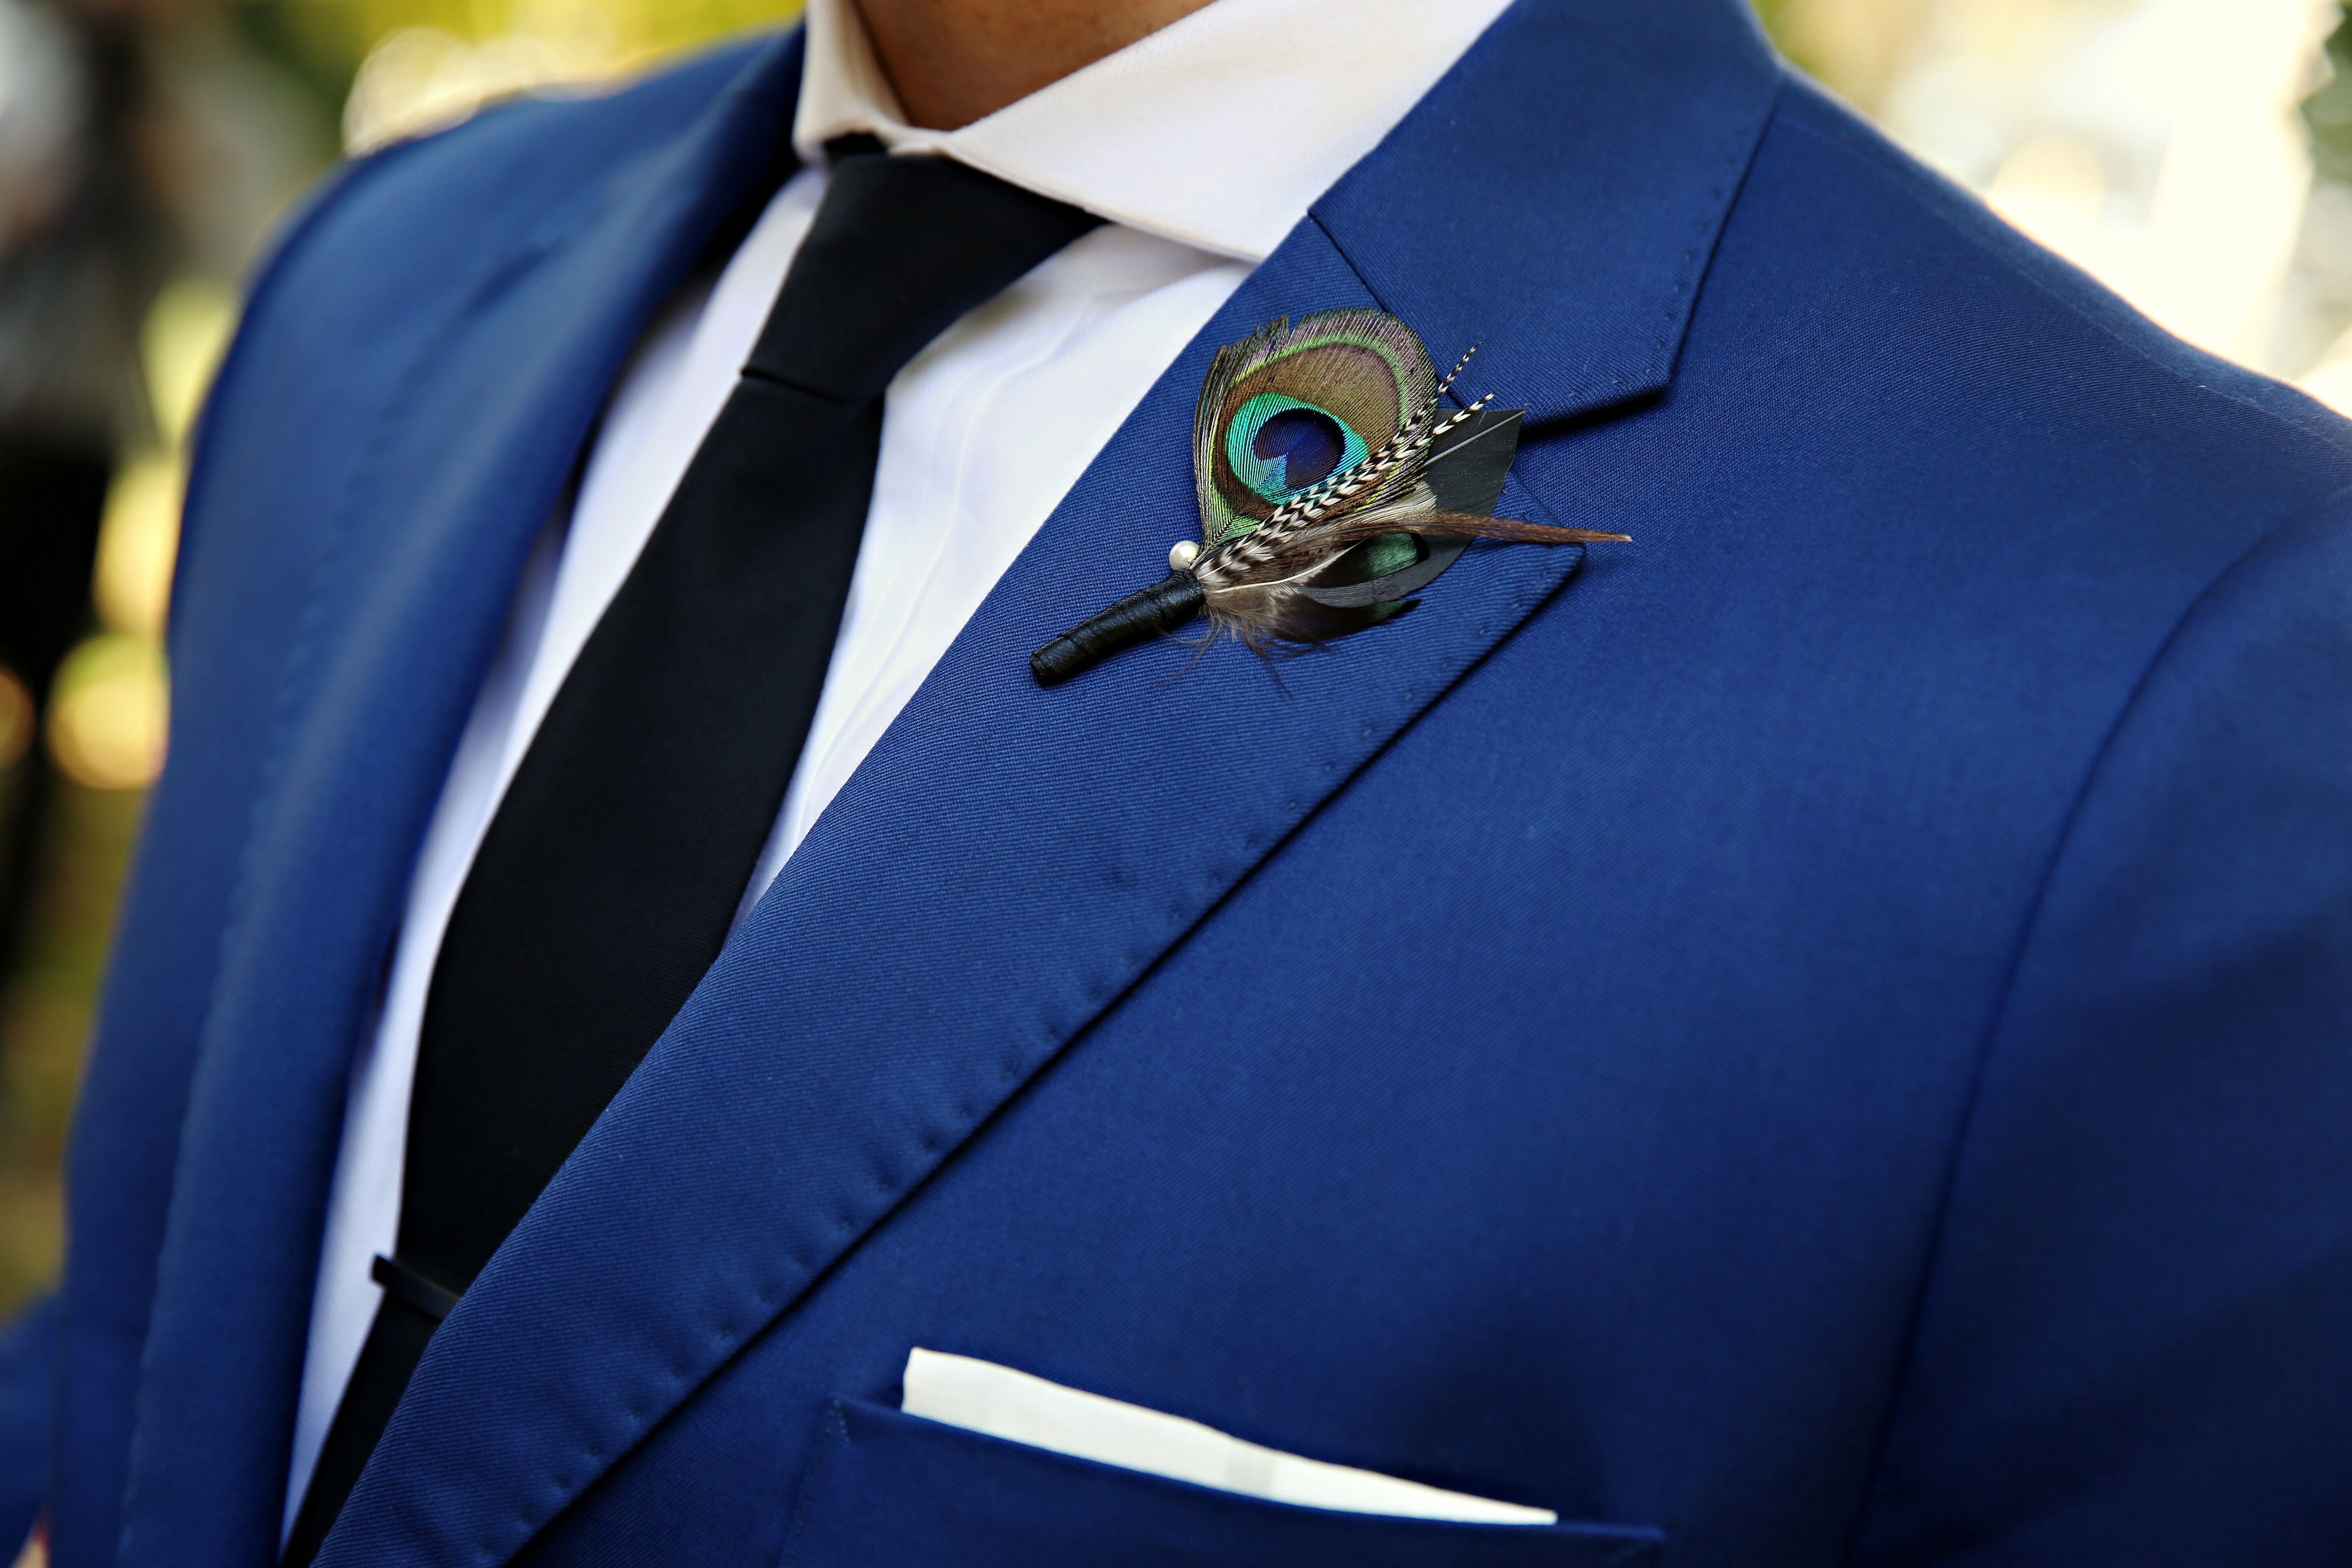 Groom In A Blue Suit With A Peacock Feather Boutonniere